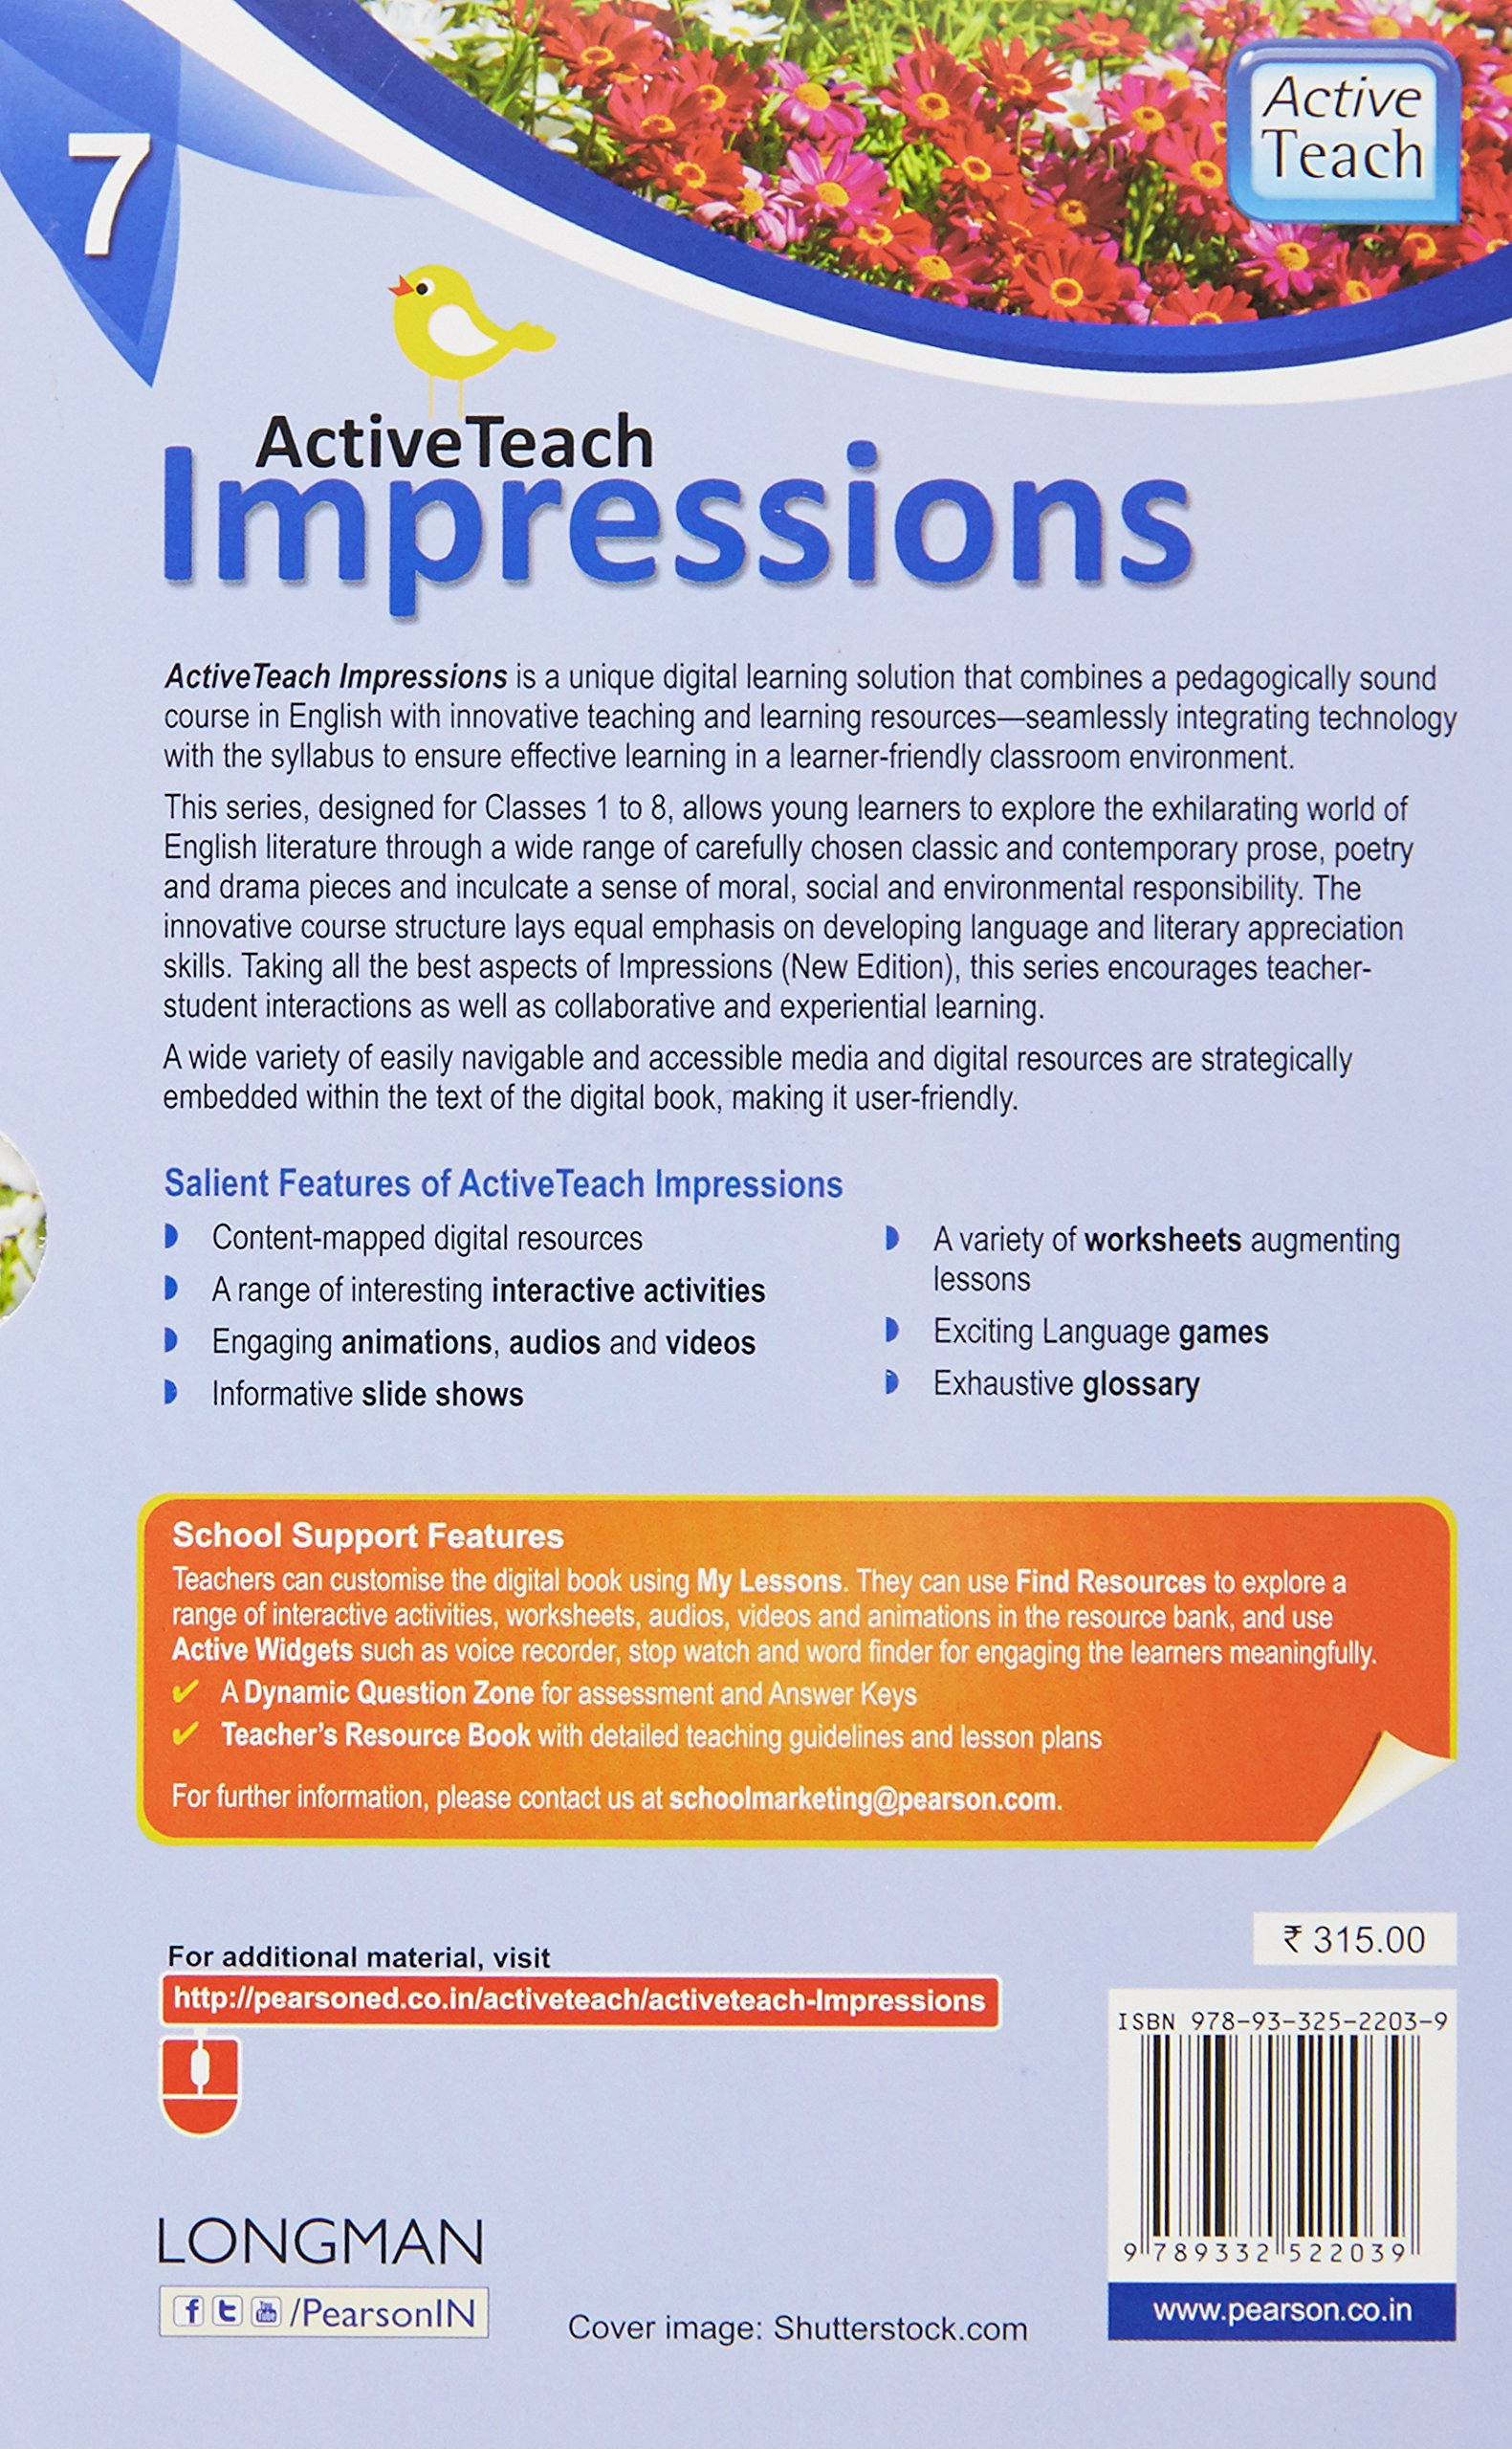 Longman impressions 6 guide ebook array amazon in buy activeteach impressions 7 by pearson for icse english rh amazon in fandeluxe Choice Image